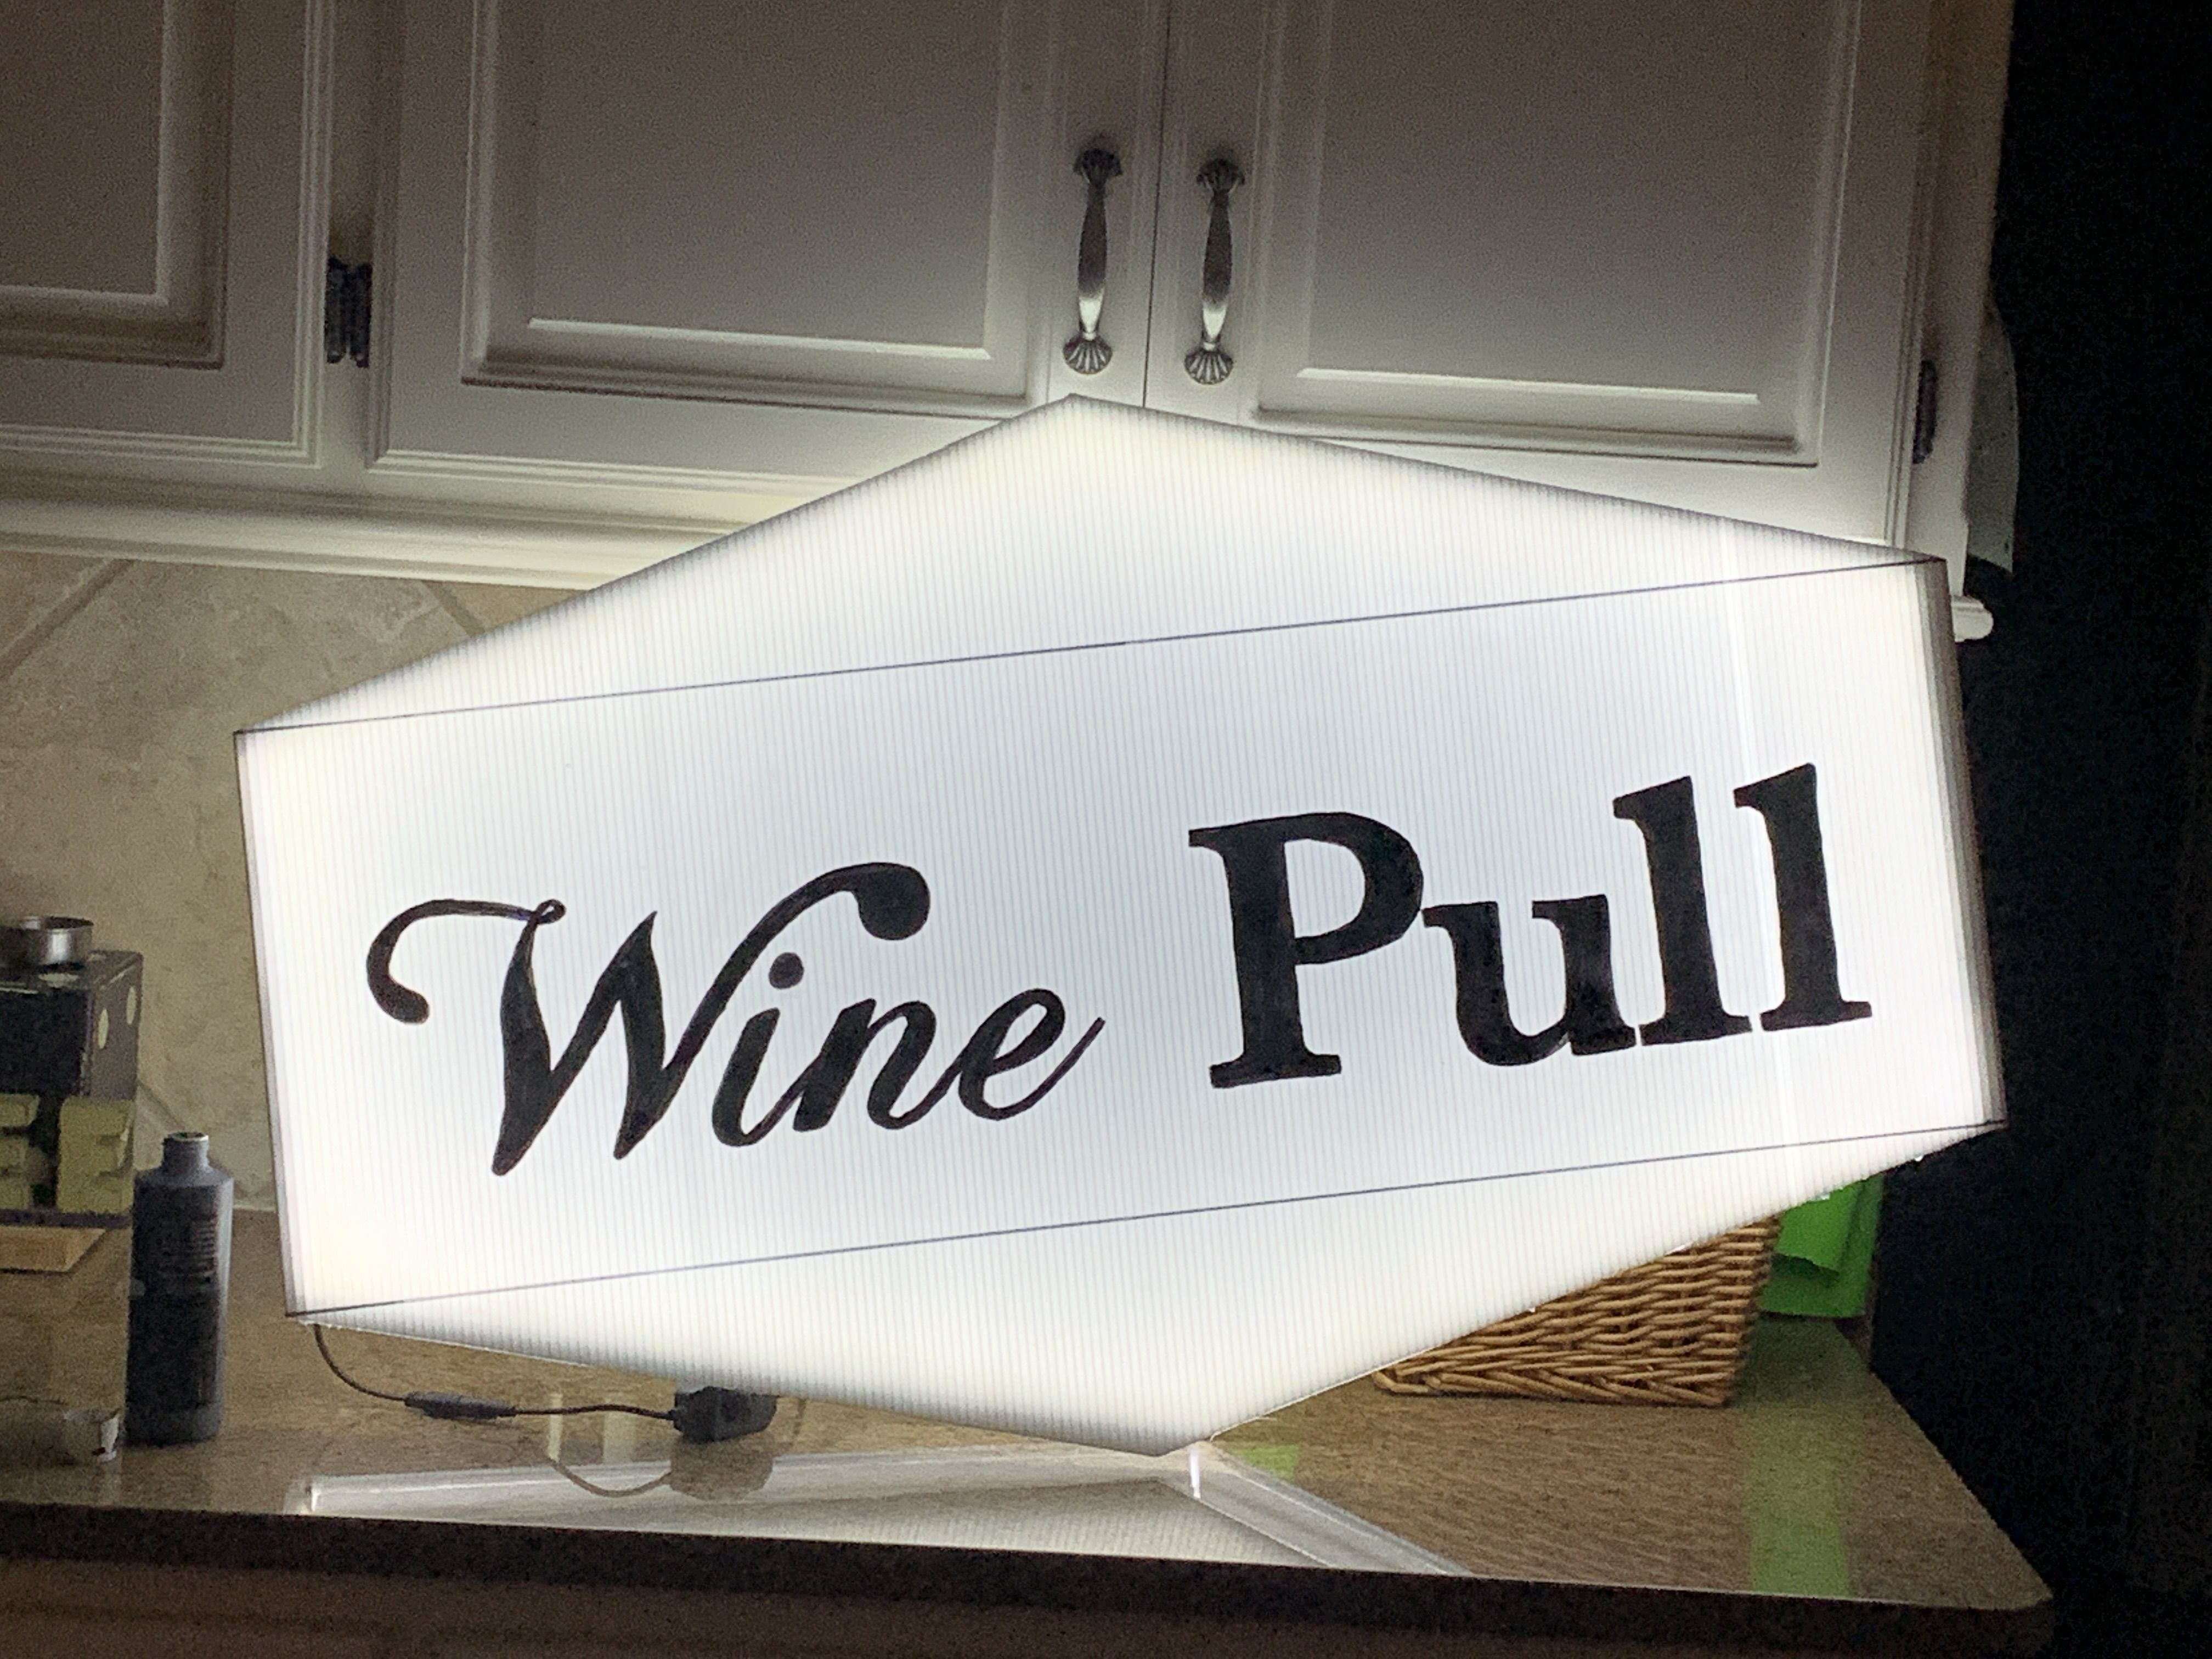 Pin by Cheryl Metz on racing 2020 in 2020 Wine pull, Wine